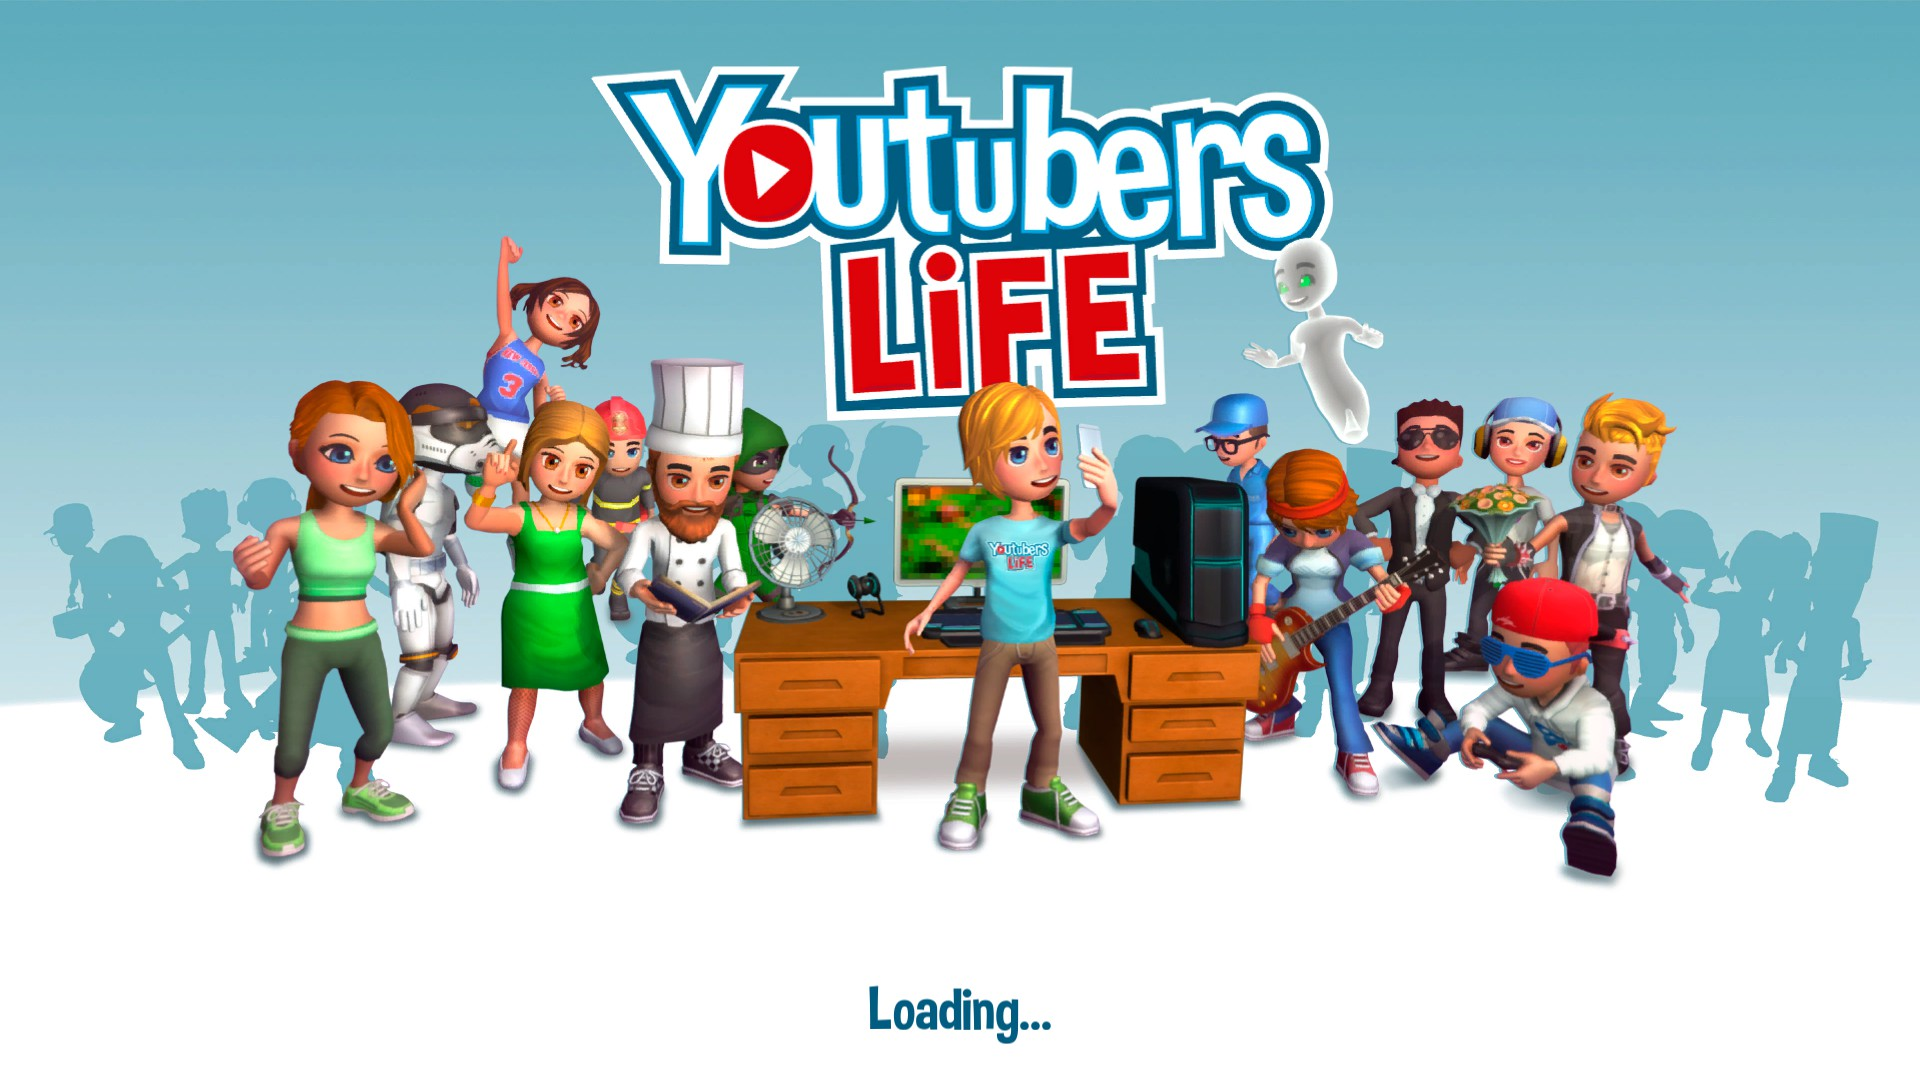 Youtubers Life loading screen